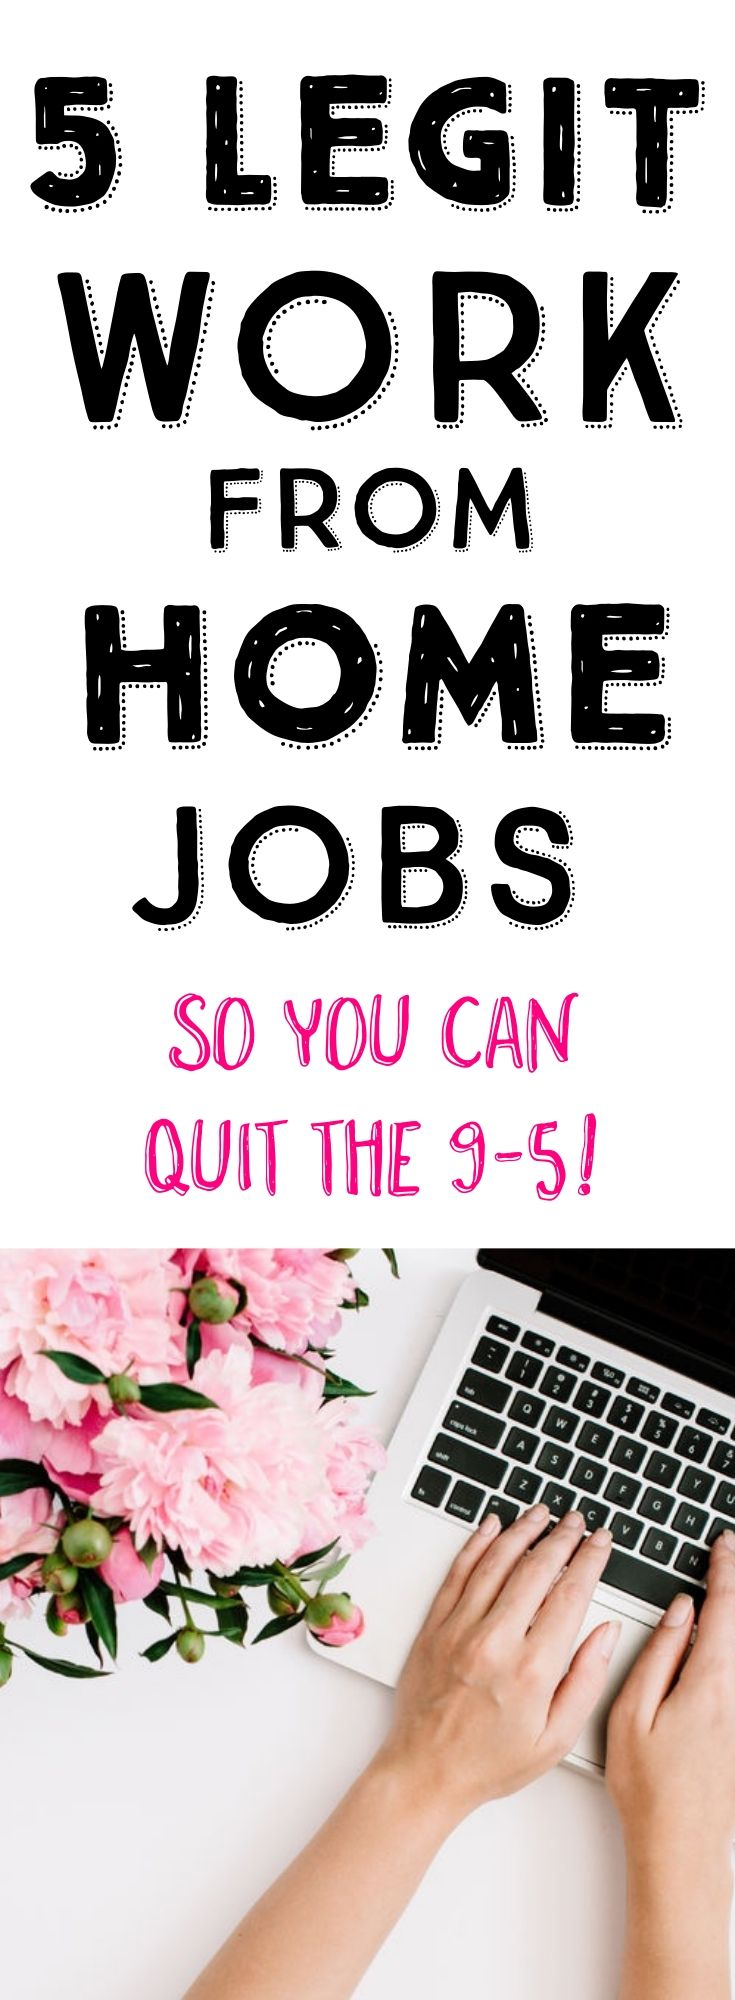 Five Tried & Tested Ways To Make A Full-Time Income Online